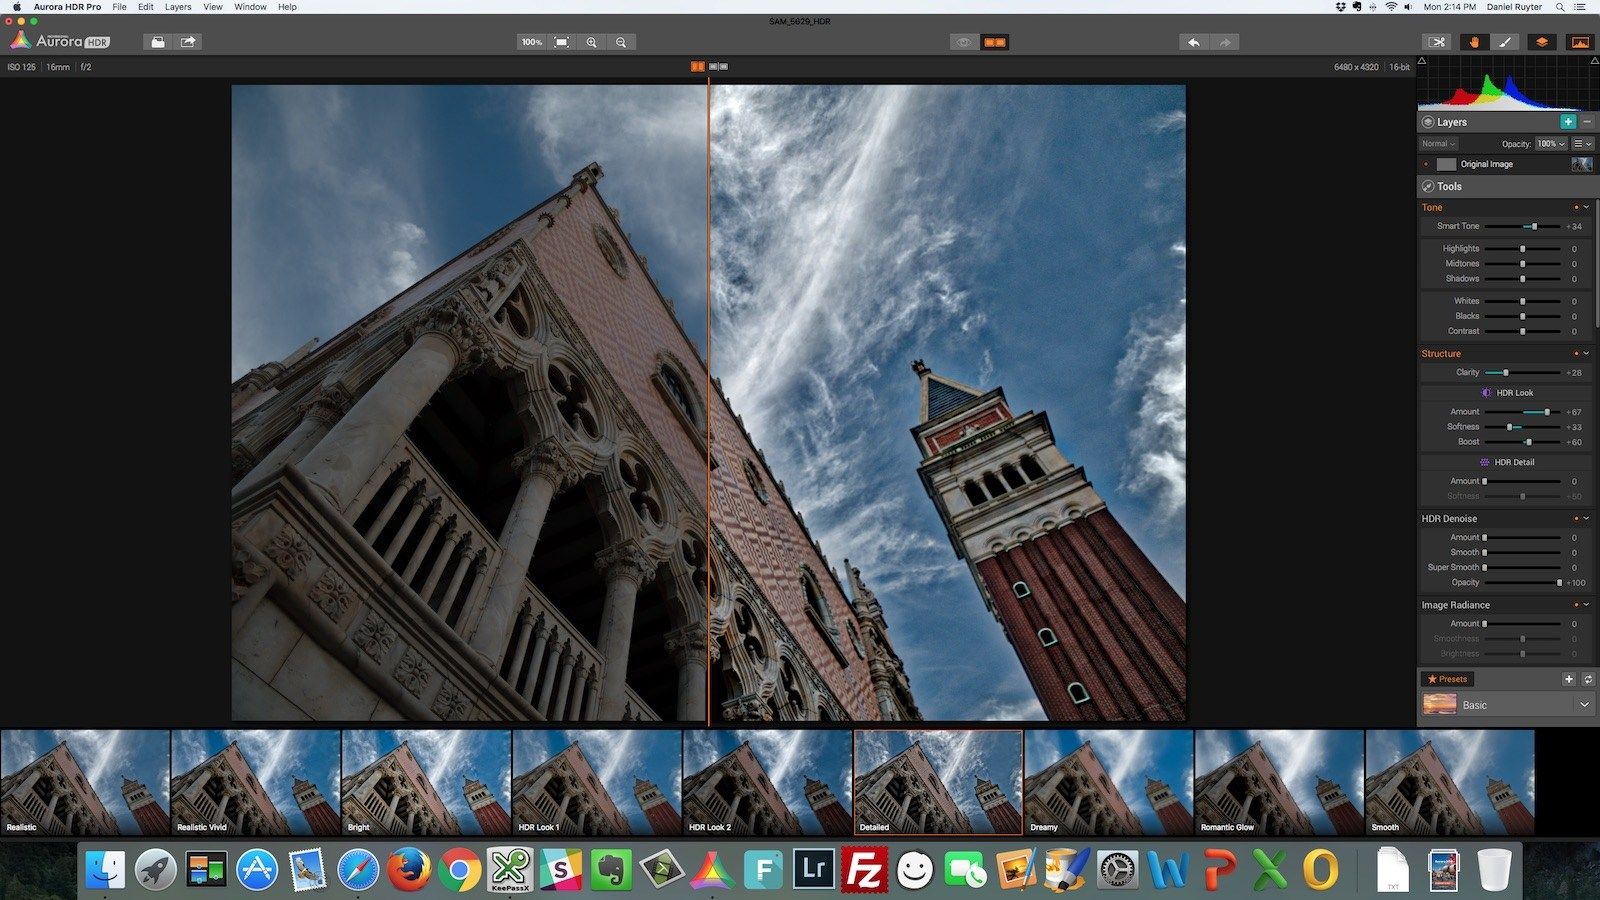 Getting Started with Aurora HDR: Standard vs Pro Versions